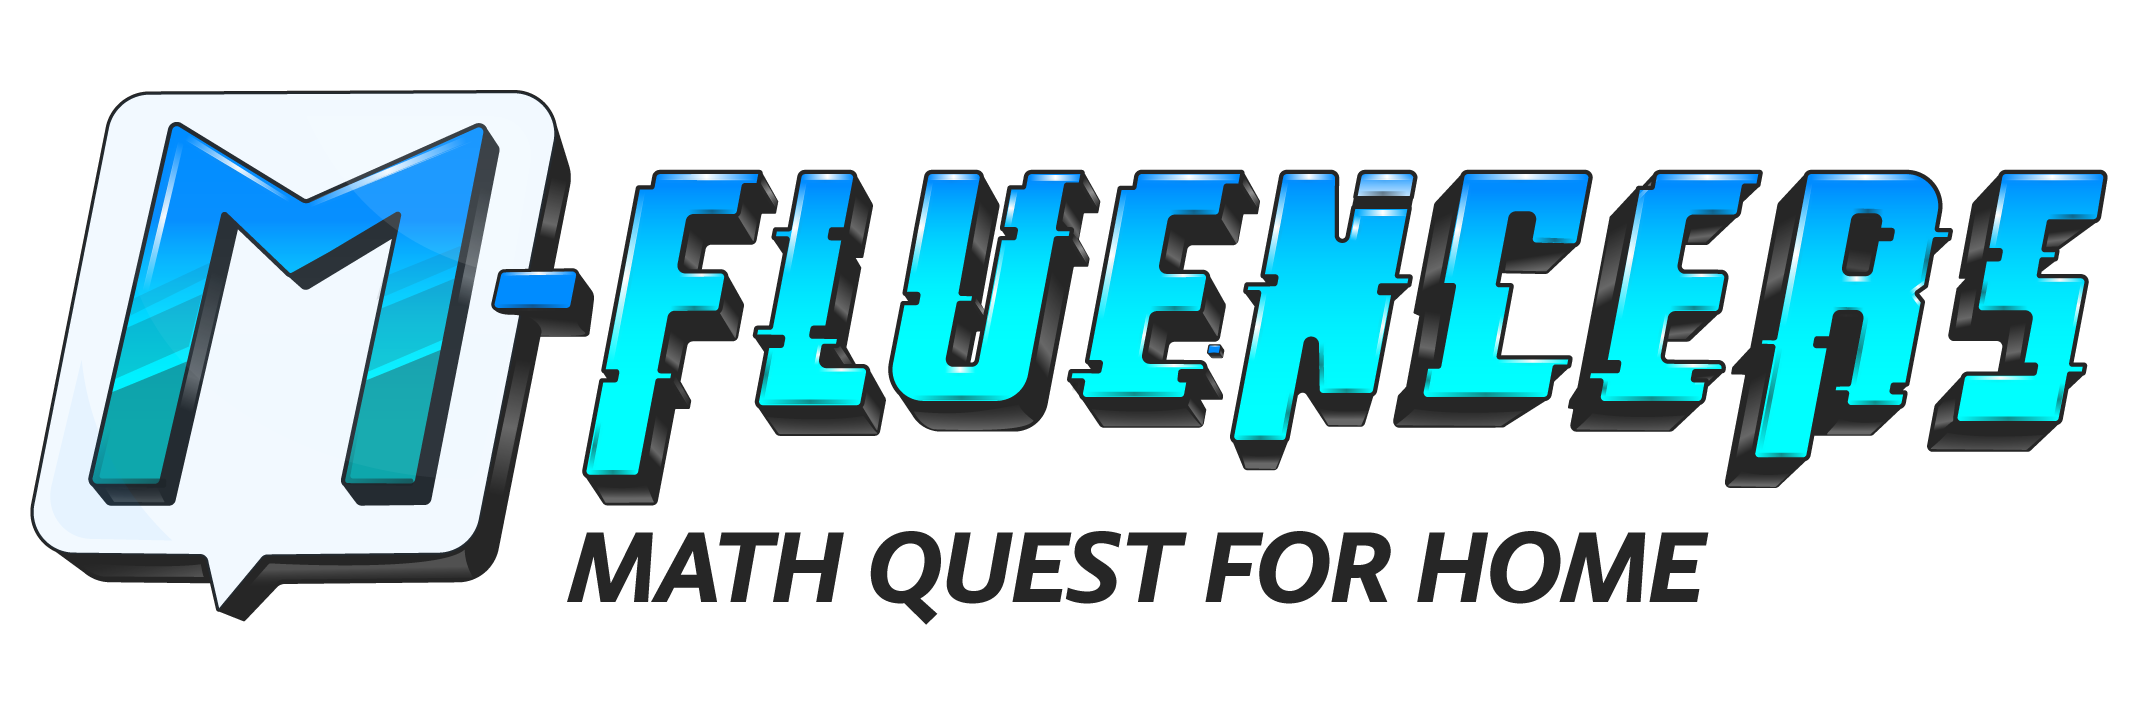 M-Fluencers Math Quest: For Home